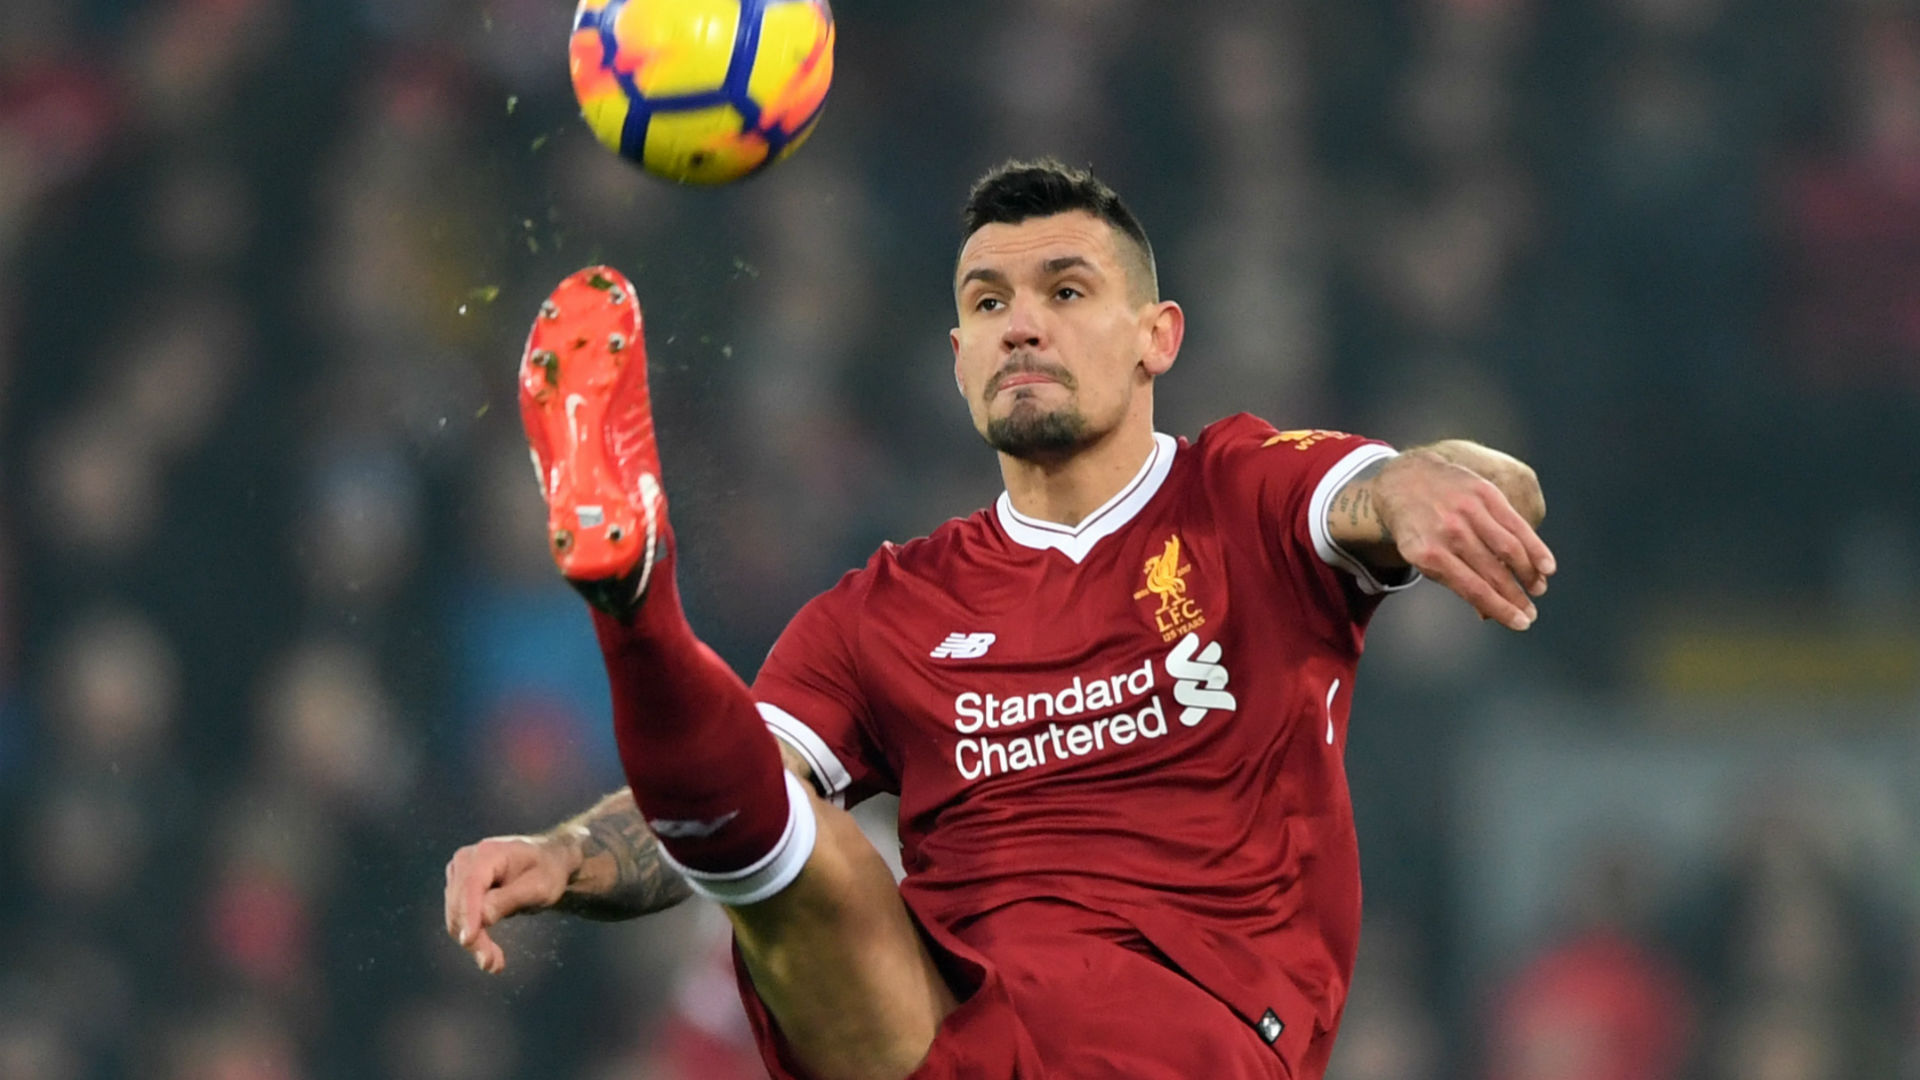 Lovren denies any wrongdoing after perjury charge